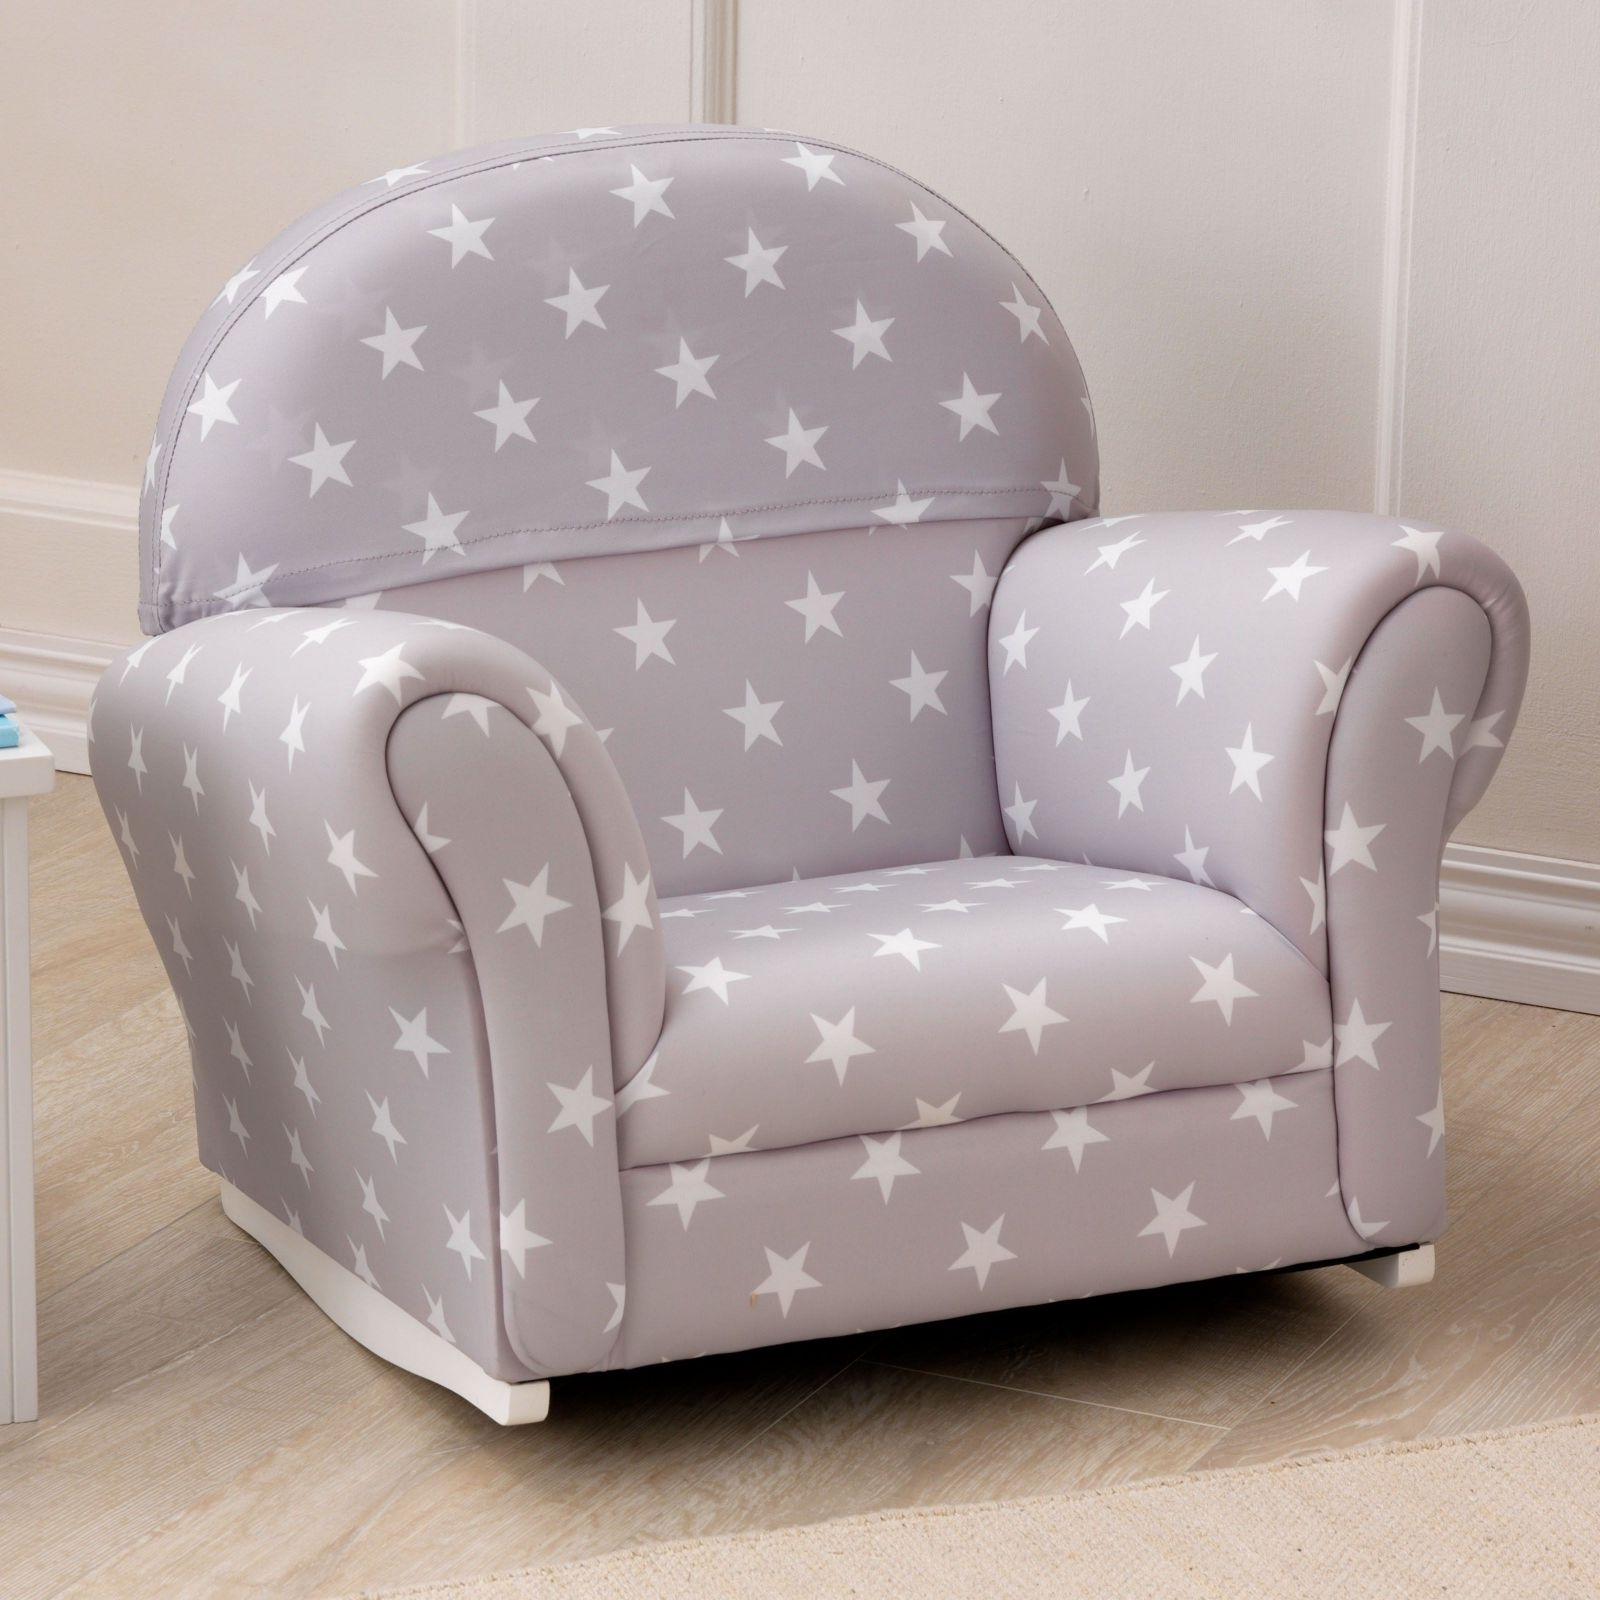 Well Known Awesome Toddler Upholstered Rocking Chair — All Modern Rocking Throughout Upholstered Rocking Chairs (View 18 of 20)